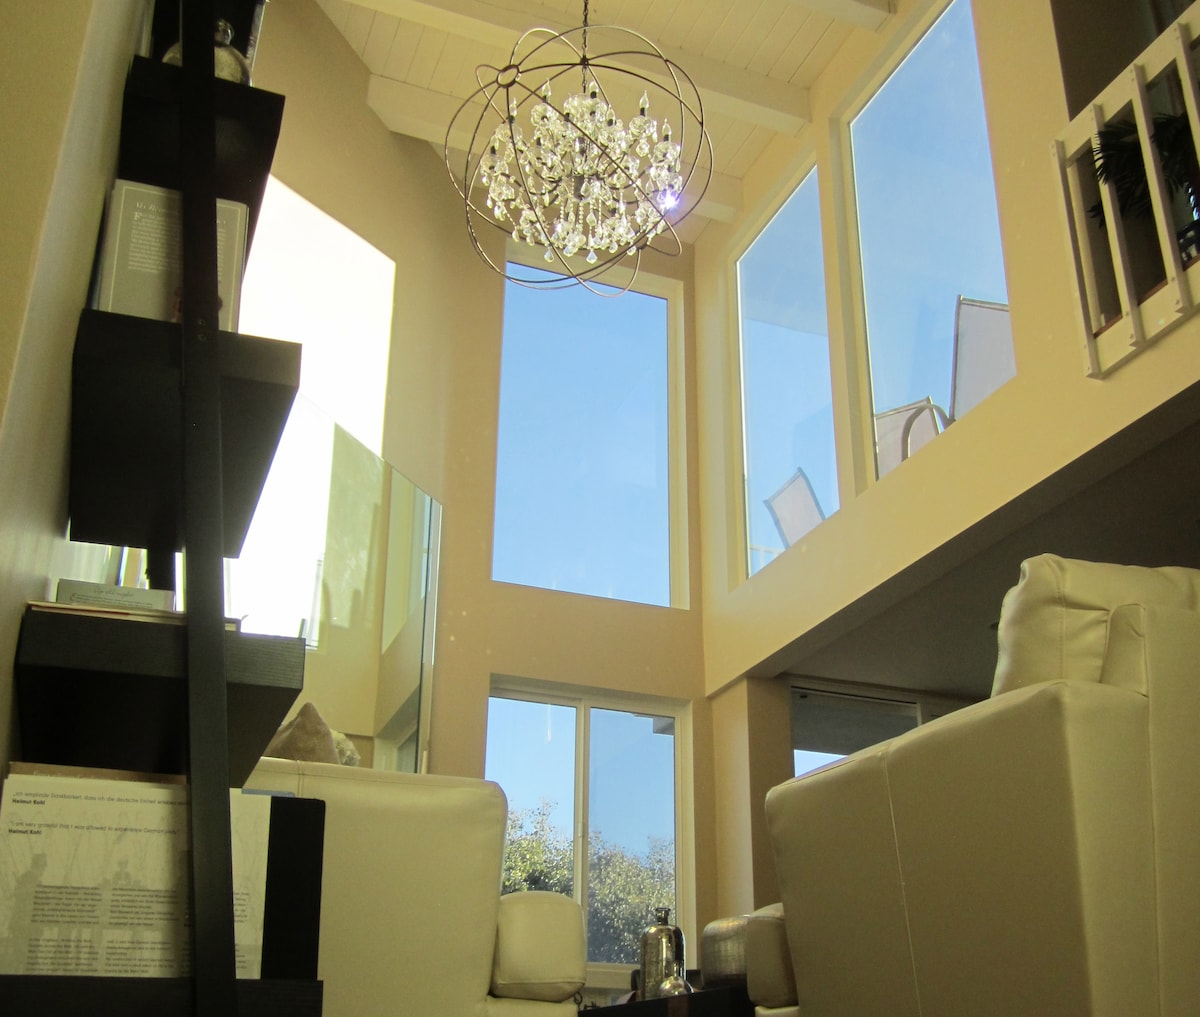 The main floor has a huge vaulted ceiling with large glass windows that allow lots of natural light to flow through the house